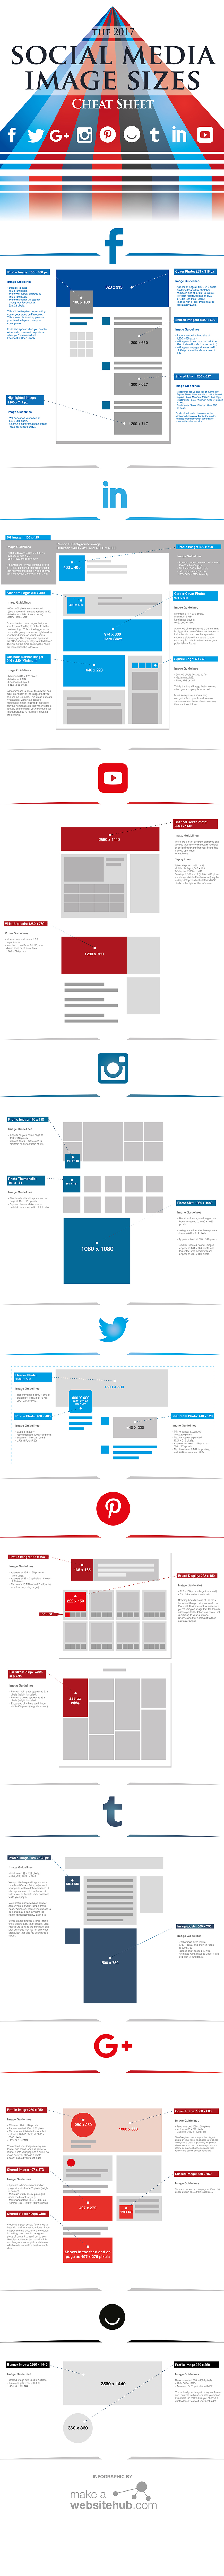 Social Media Bildgrößen - 2017 Social Media Image Sizes Cheat Sheet